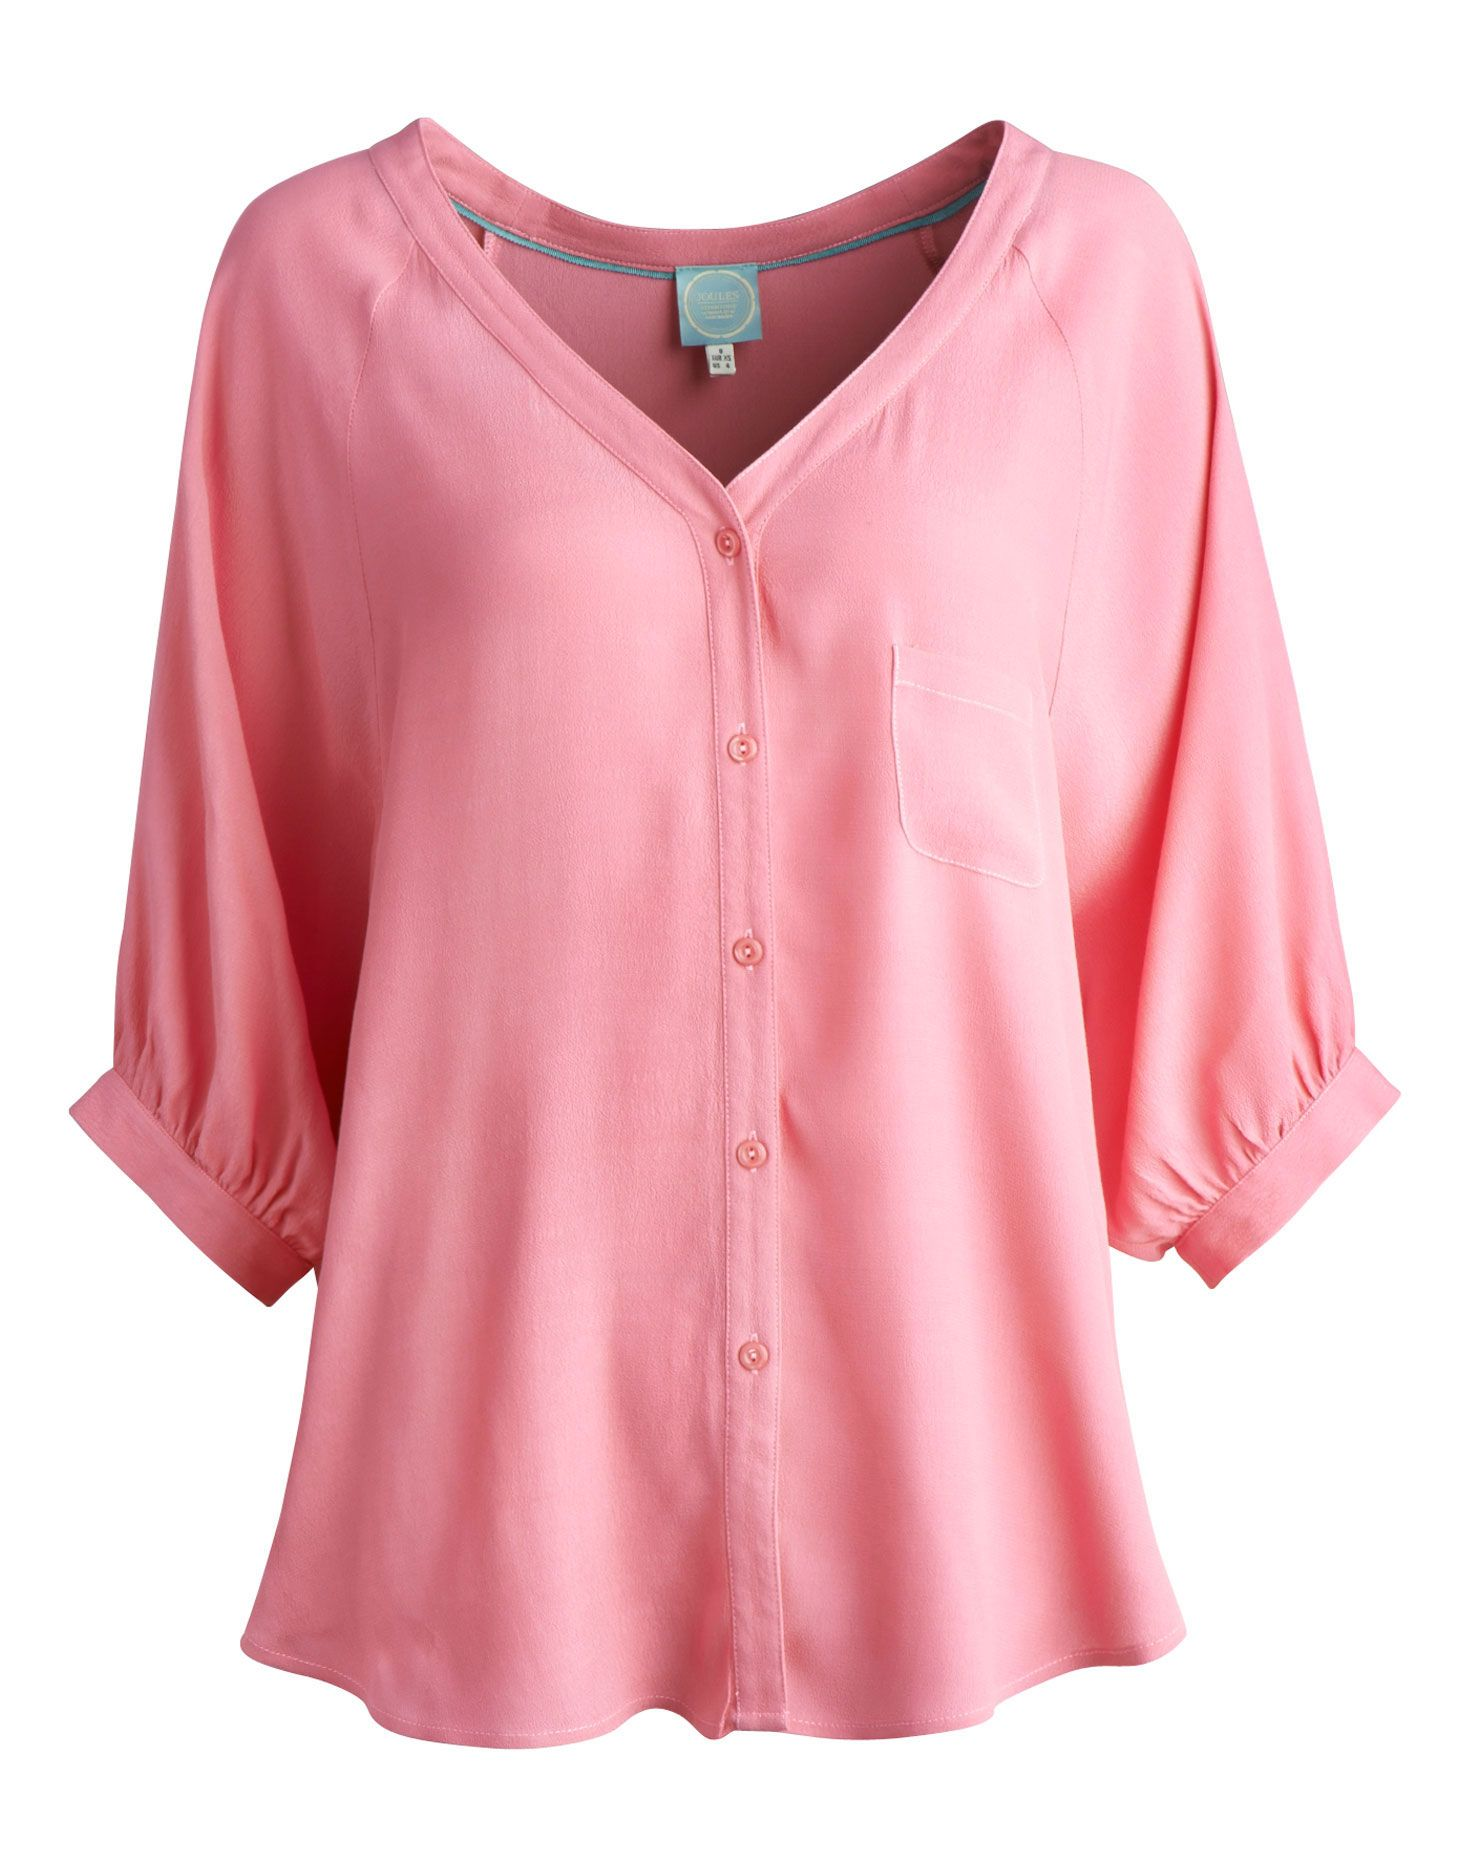 Find great deals on eBay for womens hot pink tops. Shop with confidence.